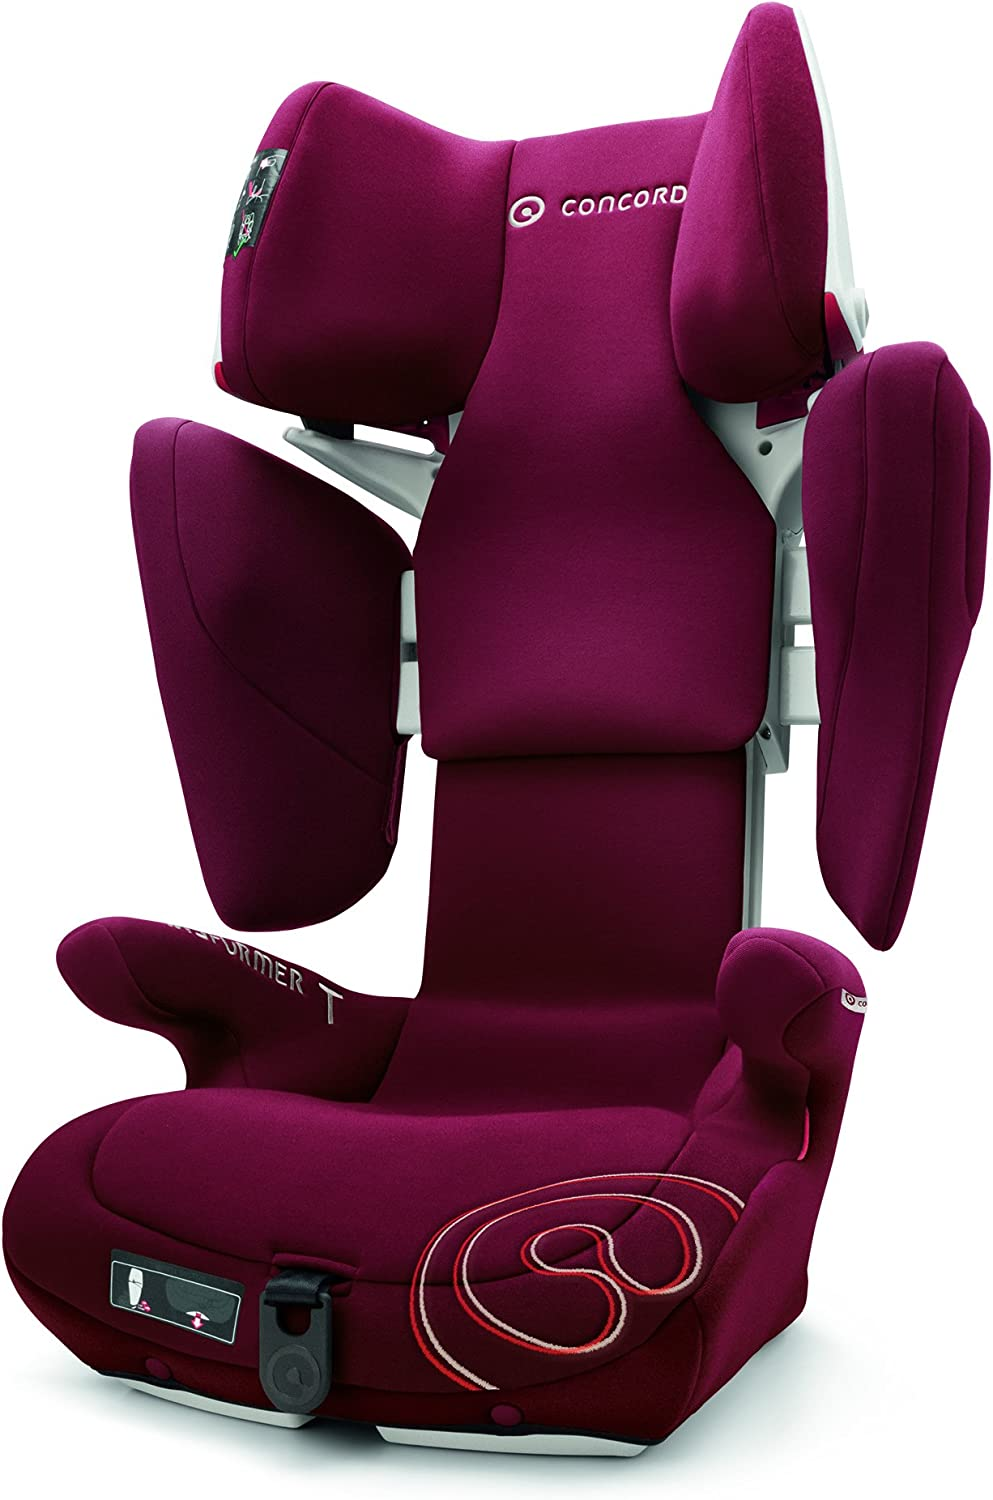 Concord Transformer T Silla de Coche Grupo 2 3, de 15 a 36 kg, Isofix, Color Bordeaux Red